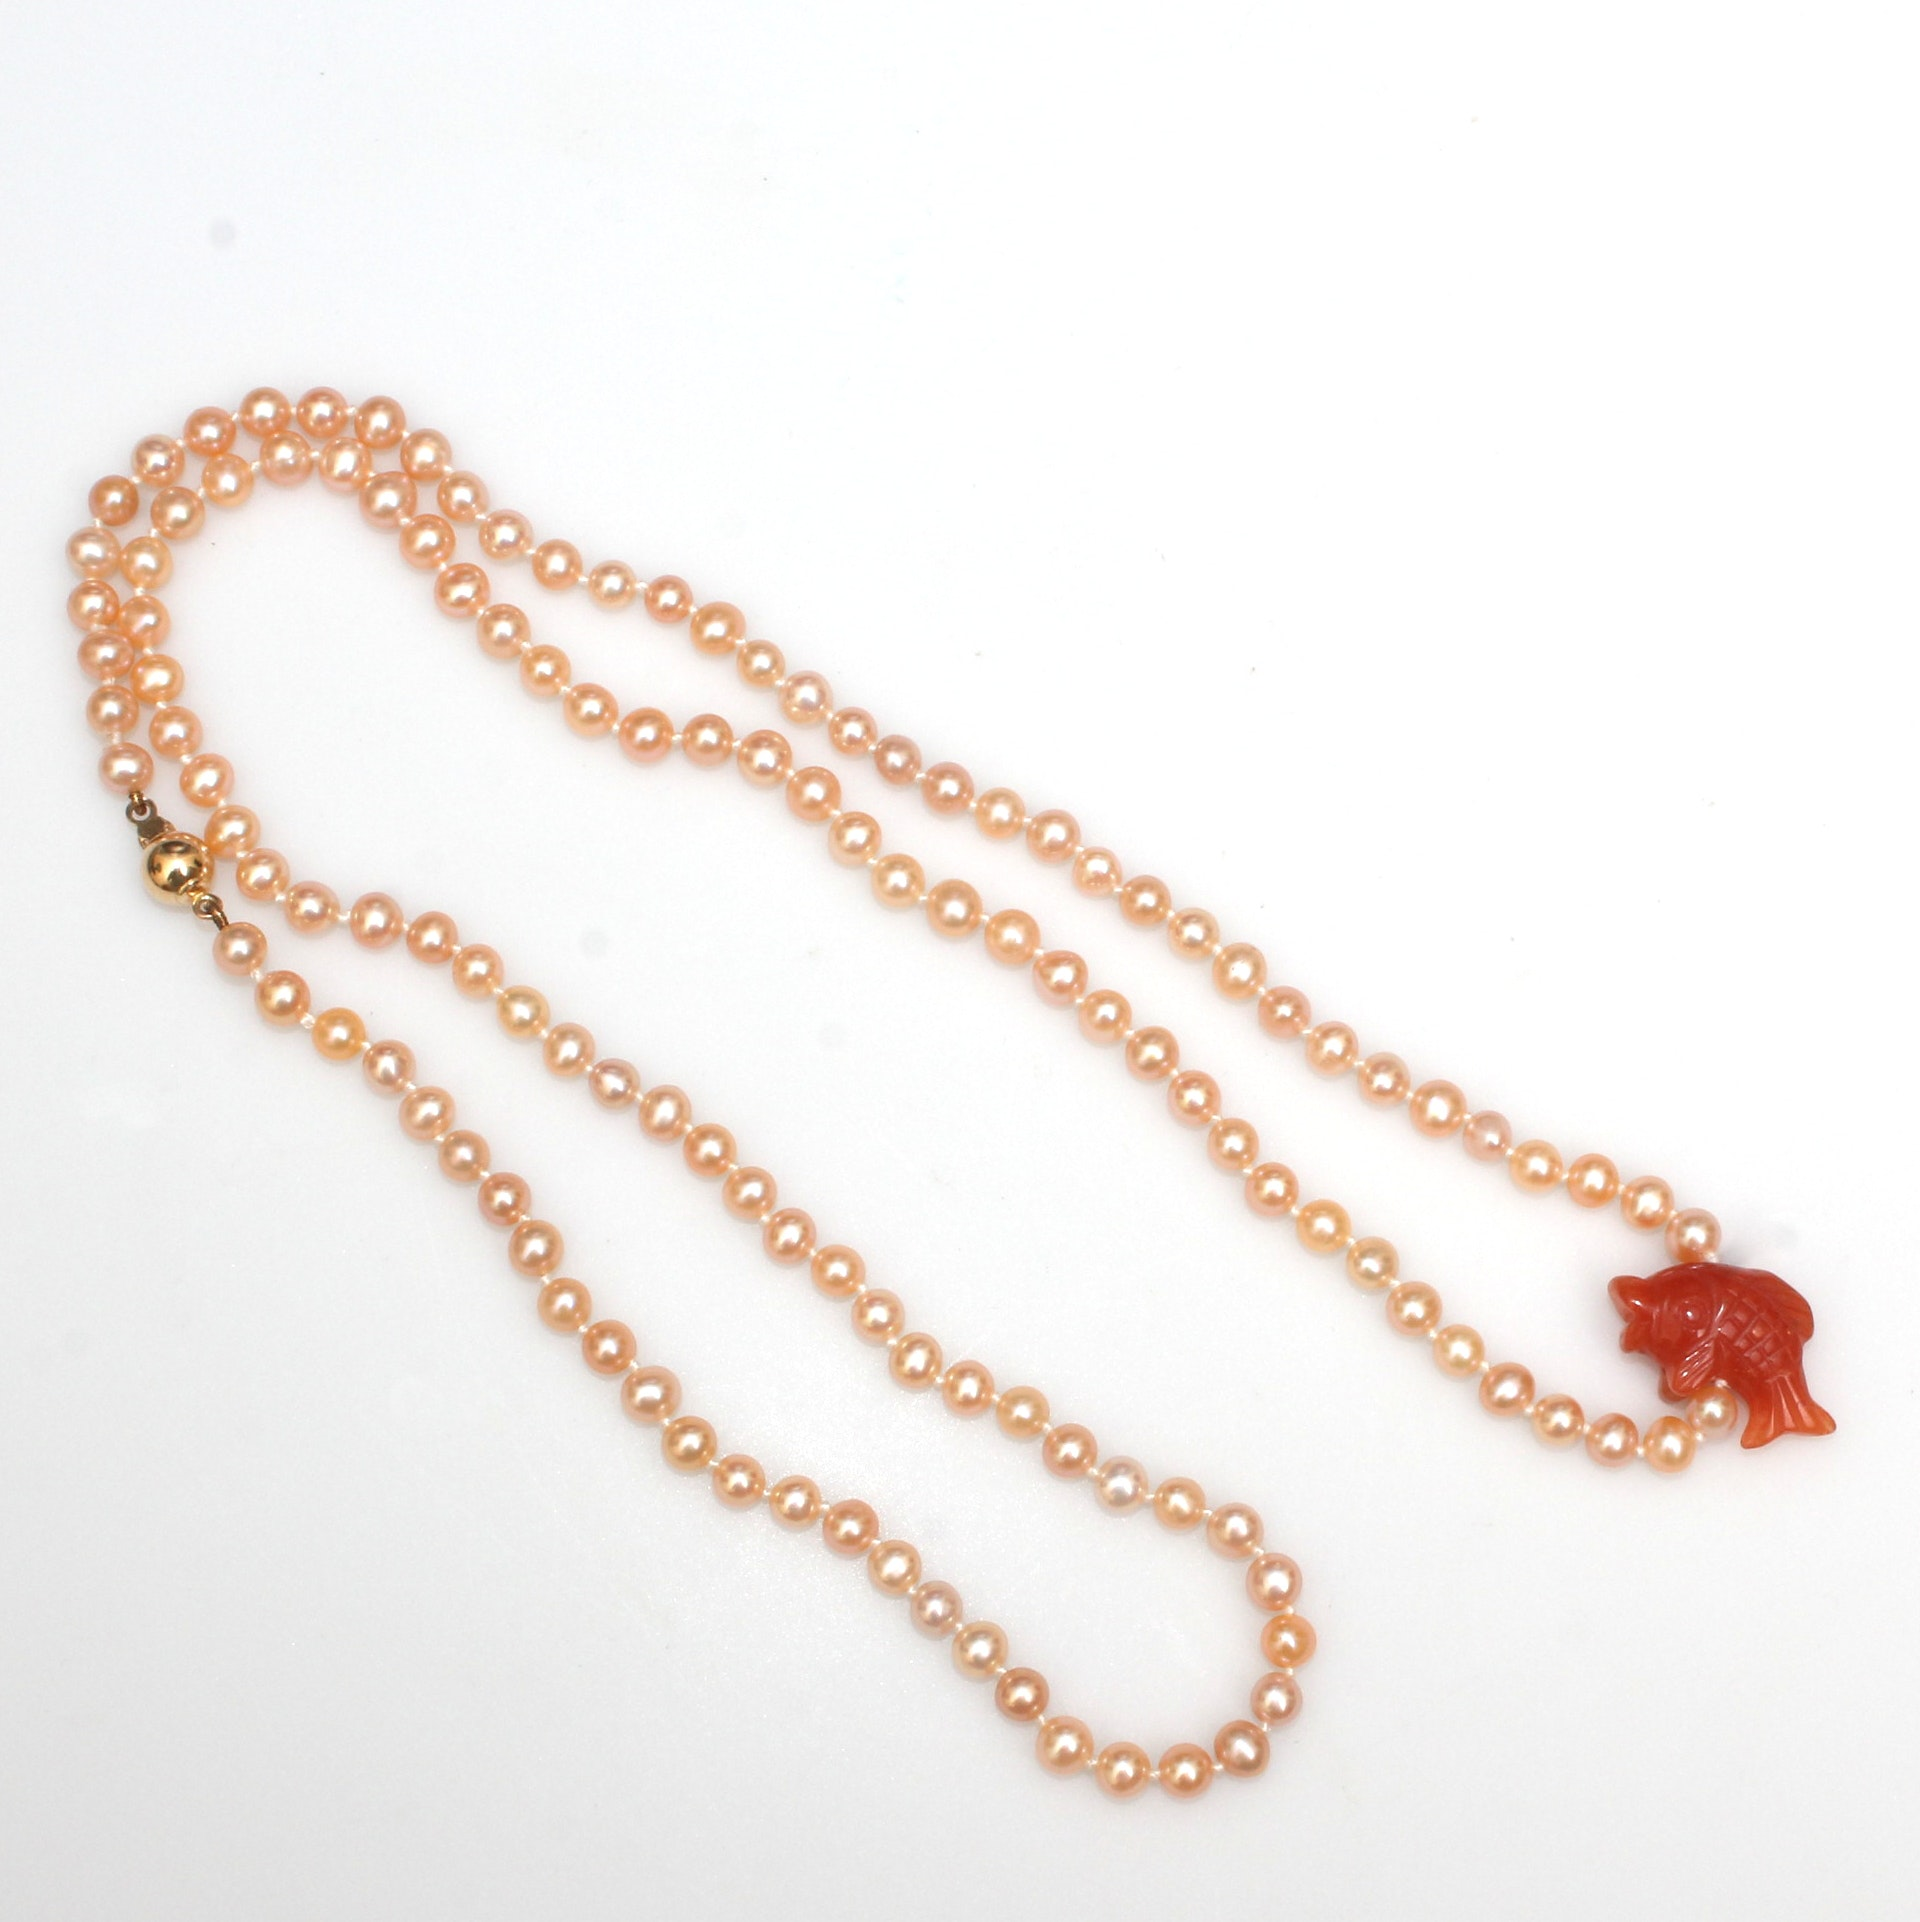 Freshwater Pearl Necklace With Carved Aventurine Fish